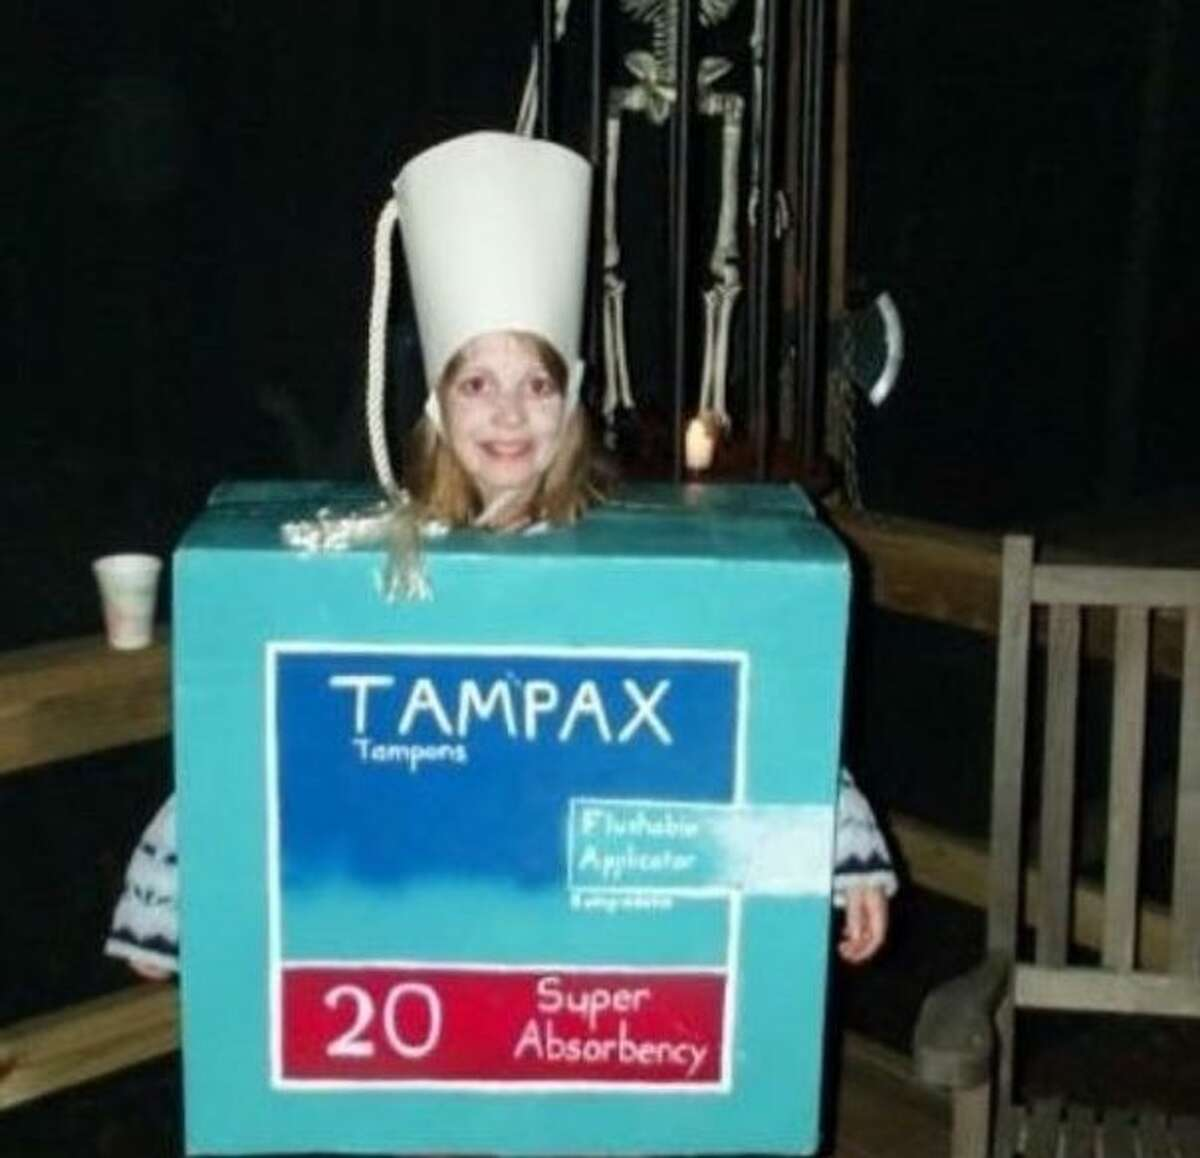 THE BEST COSTUME PERIOD: A walking Tampax box